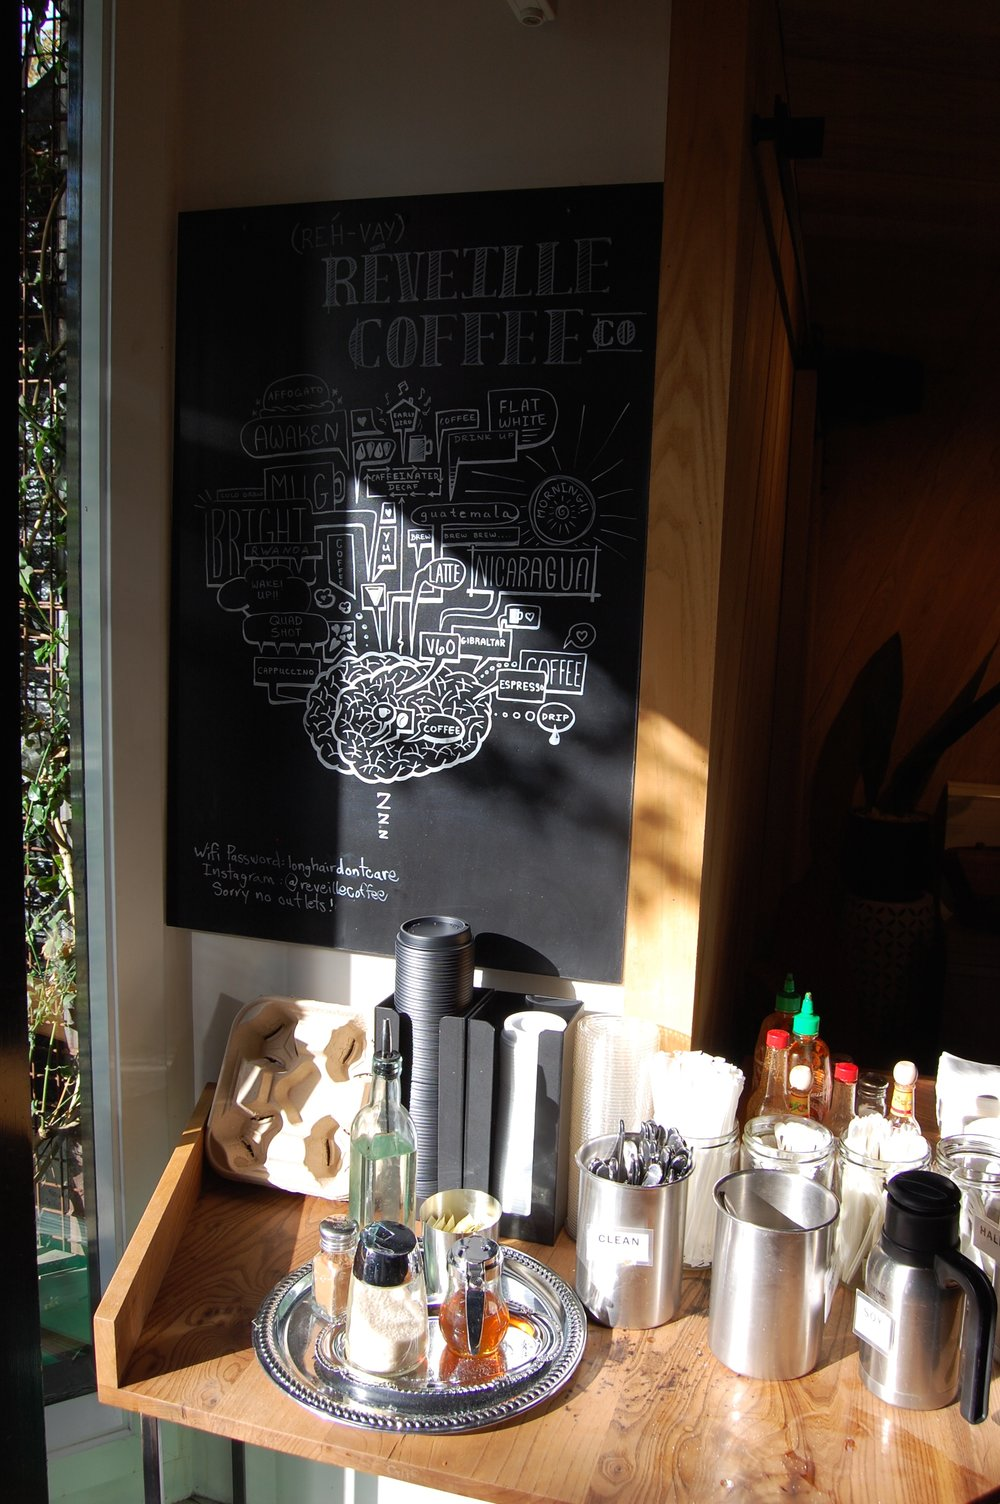 Reveille Coffee Co. | Katelyn Now